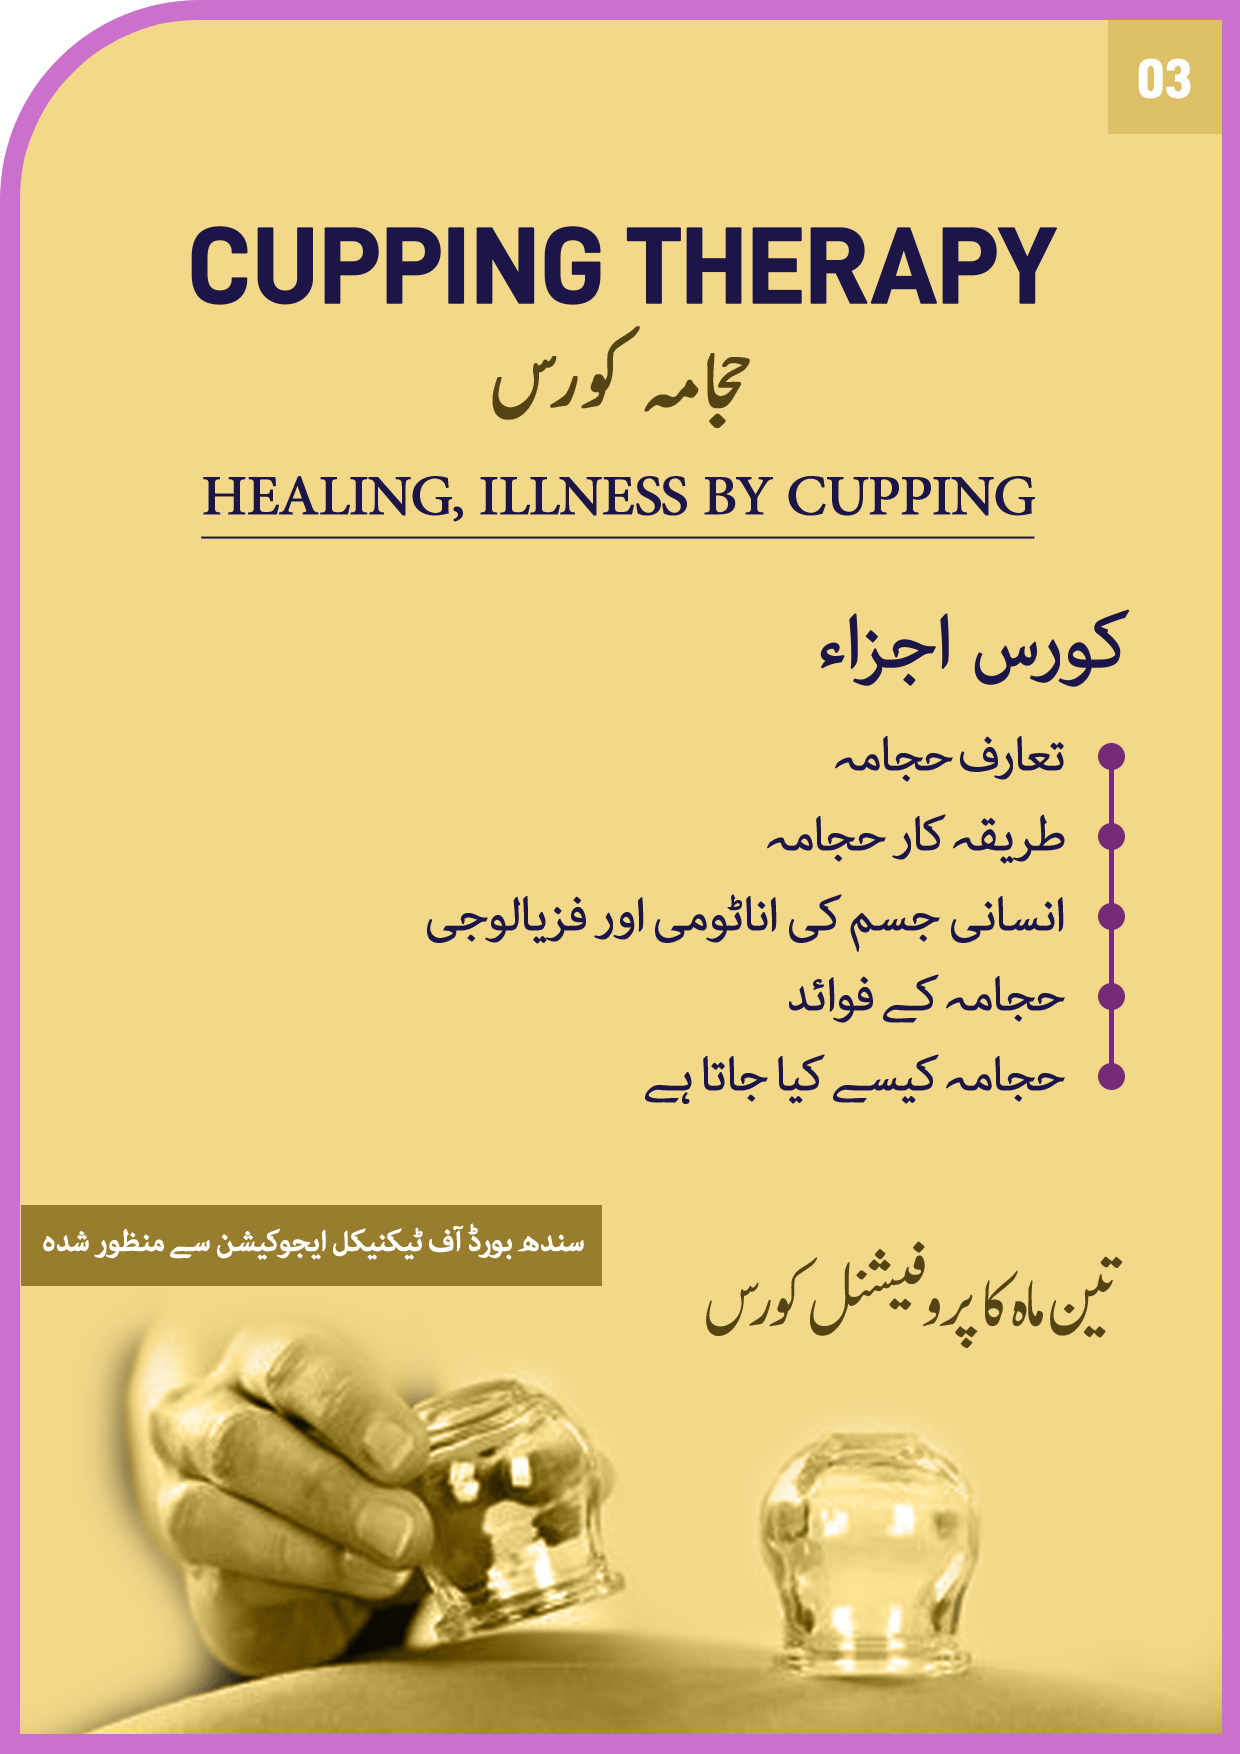 Fundamentals of Cupping Therapy